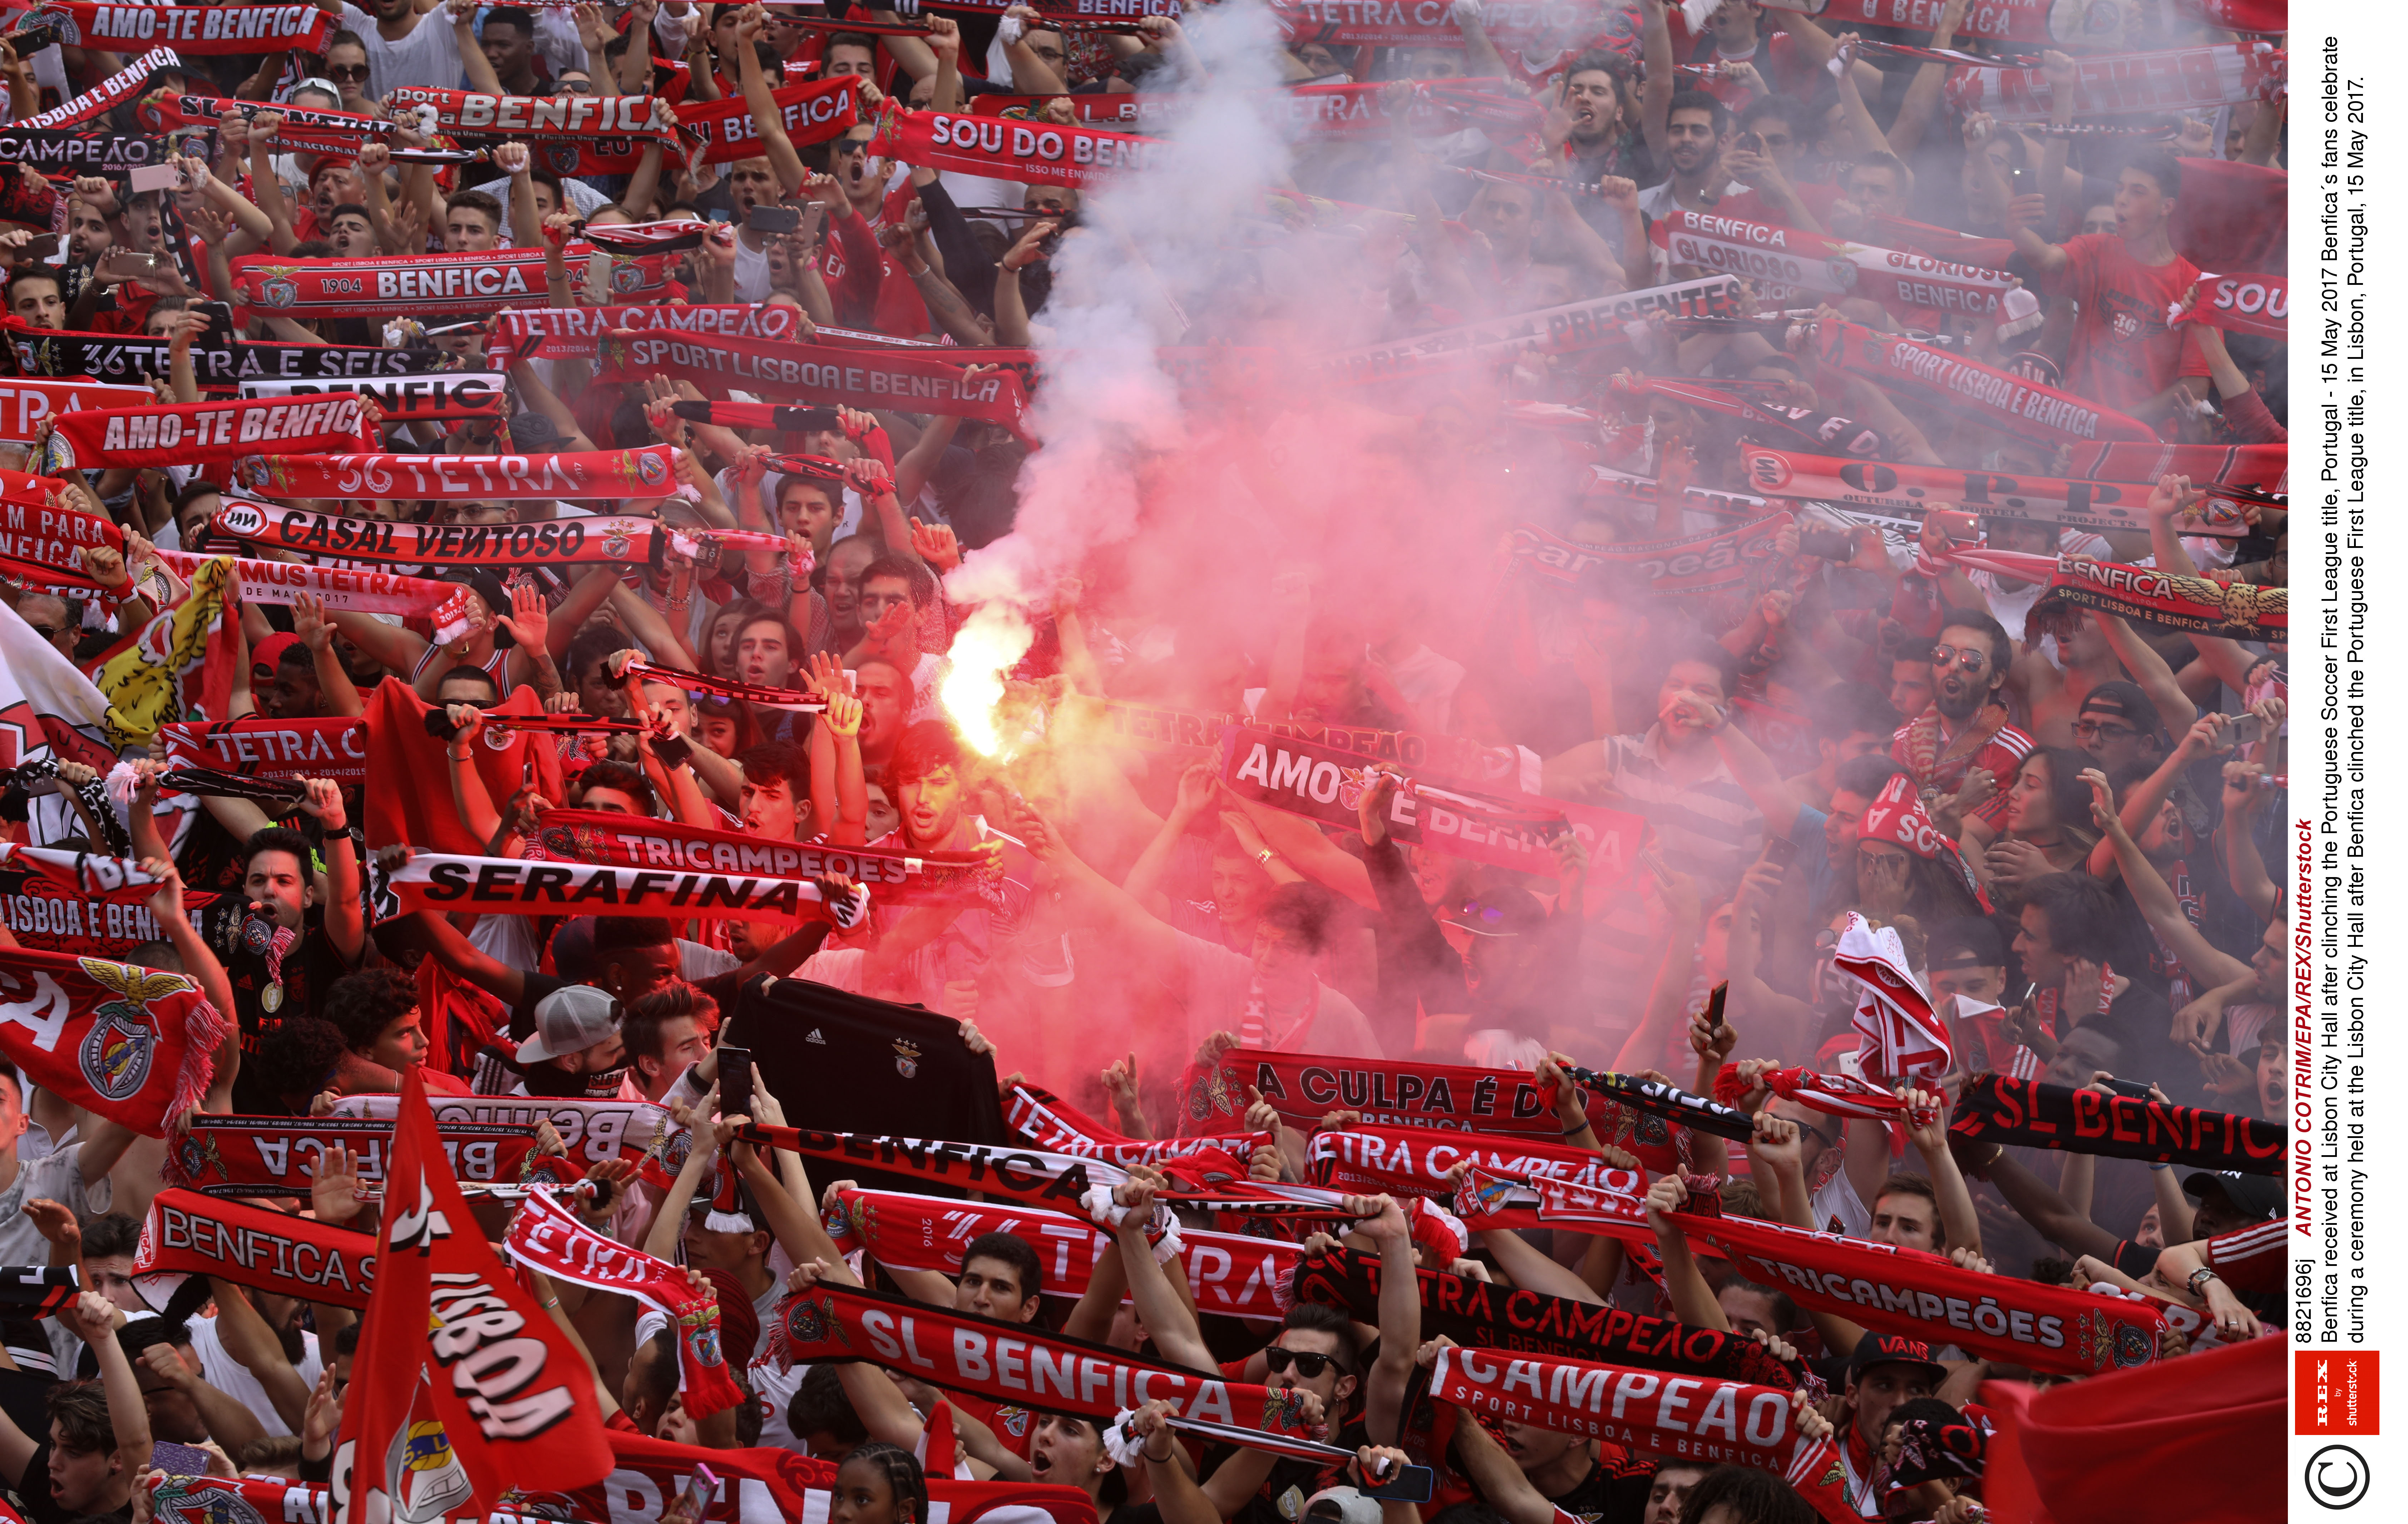 In conversation with Football Supporters Europe